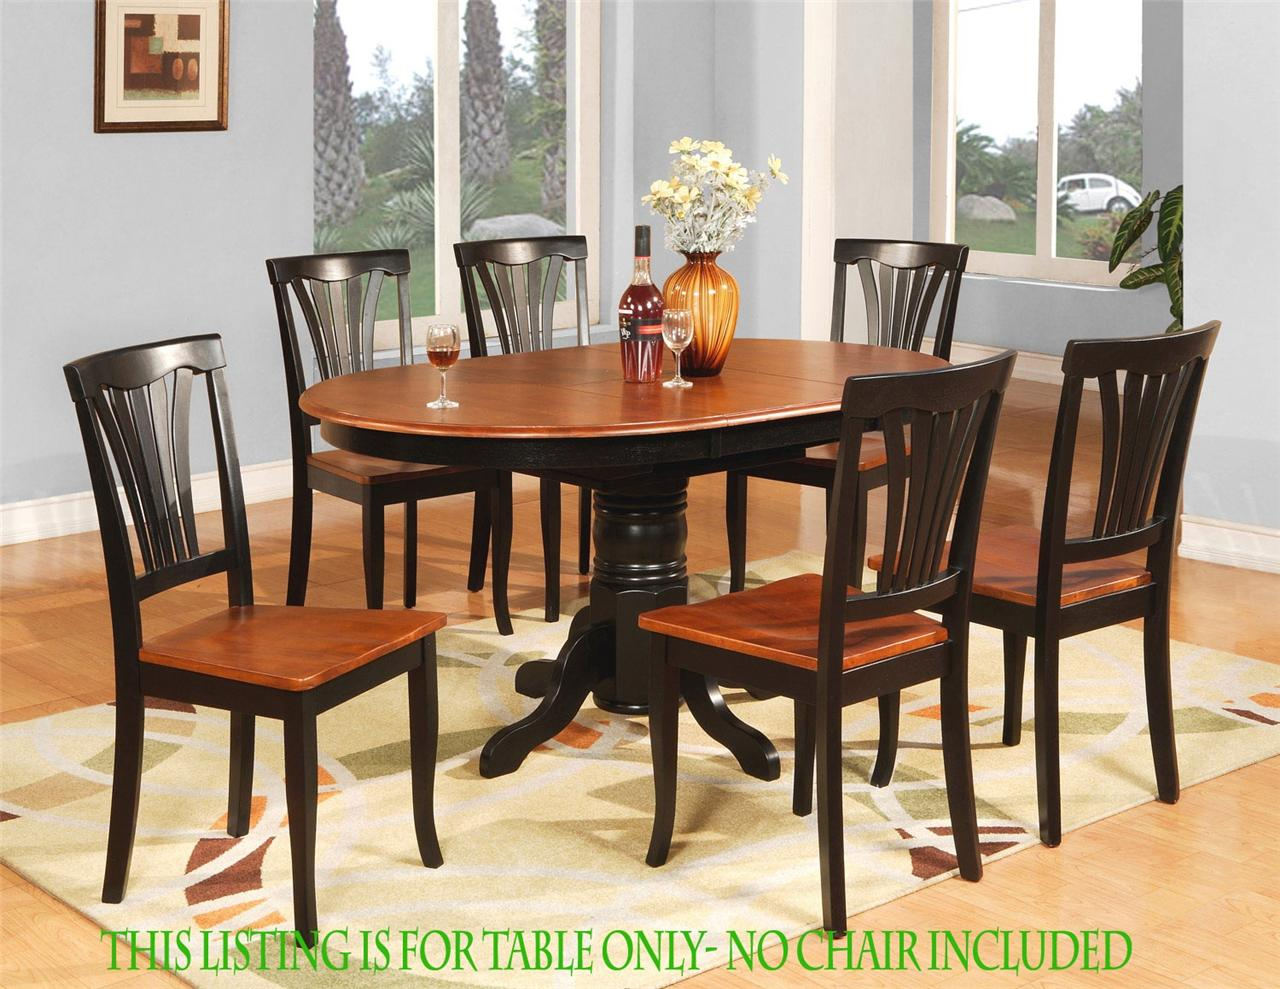 Oval dinette kitchen dining room table only 42 x 60 with for Dinette sets